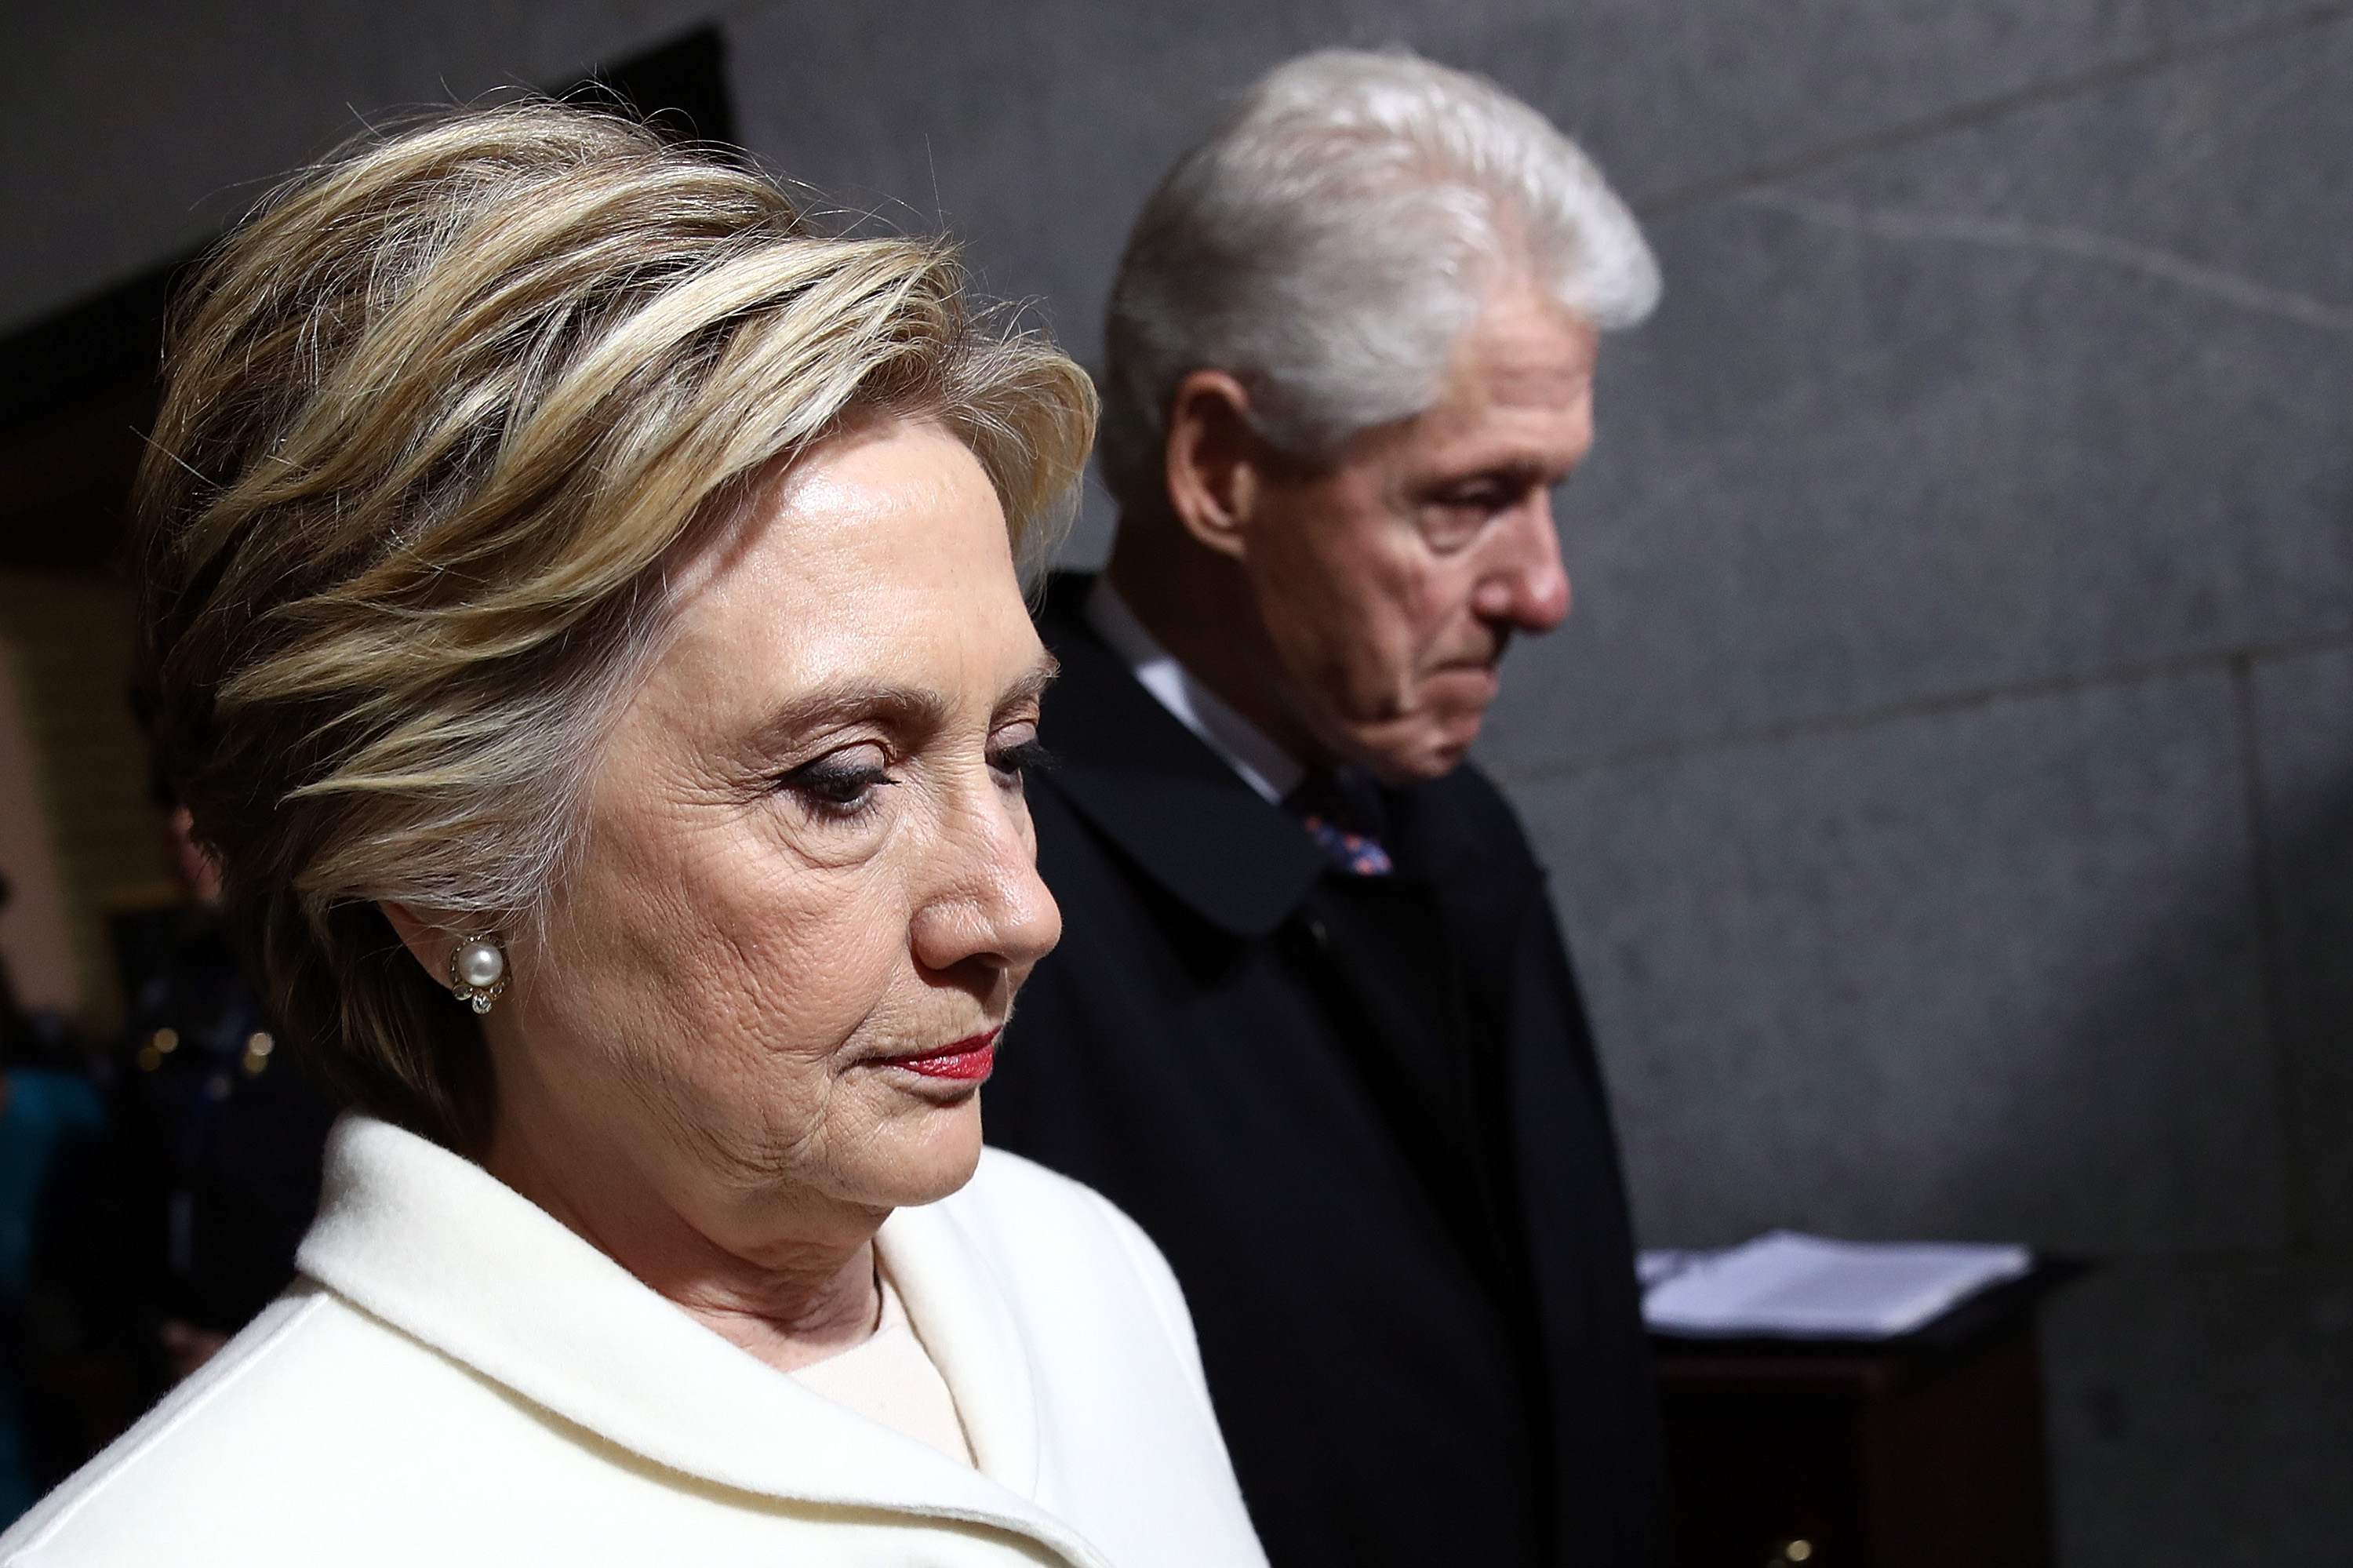 Former Democratic presidential nominee Hillary Clinton (L) and former President Bill Clinton arrive on the West Front of the U.S. Capitol on January 20, 2017 in Washington, D.C., for the inauguration of Donald Trump.